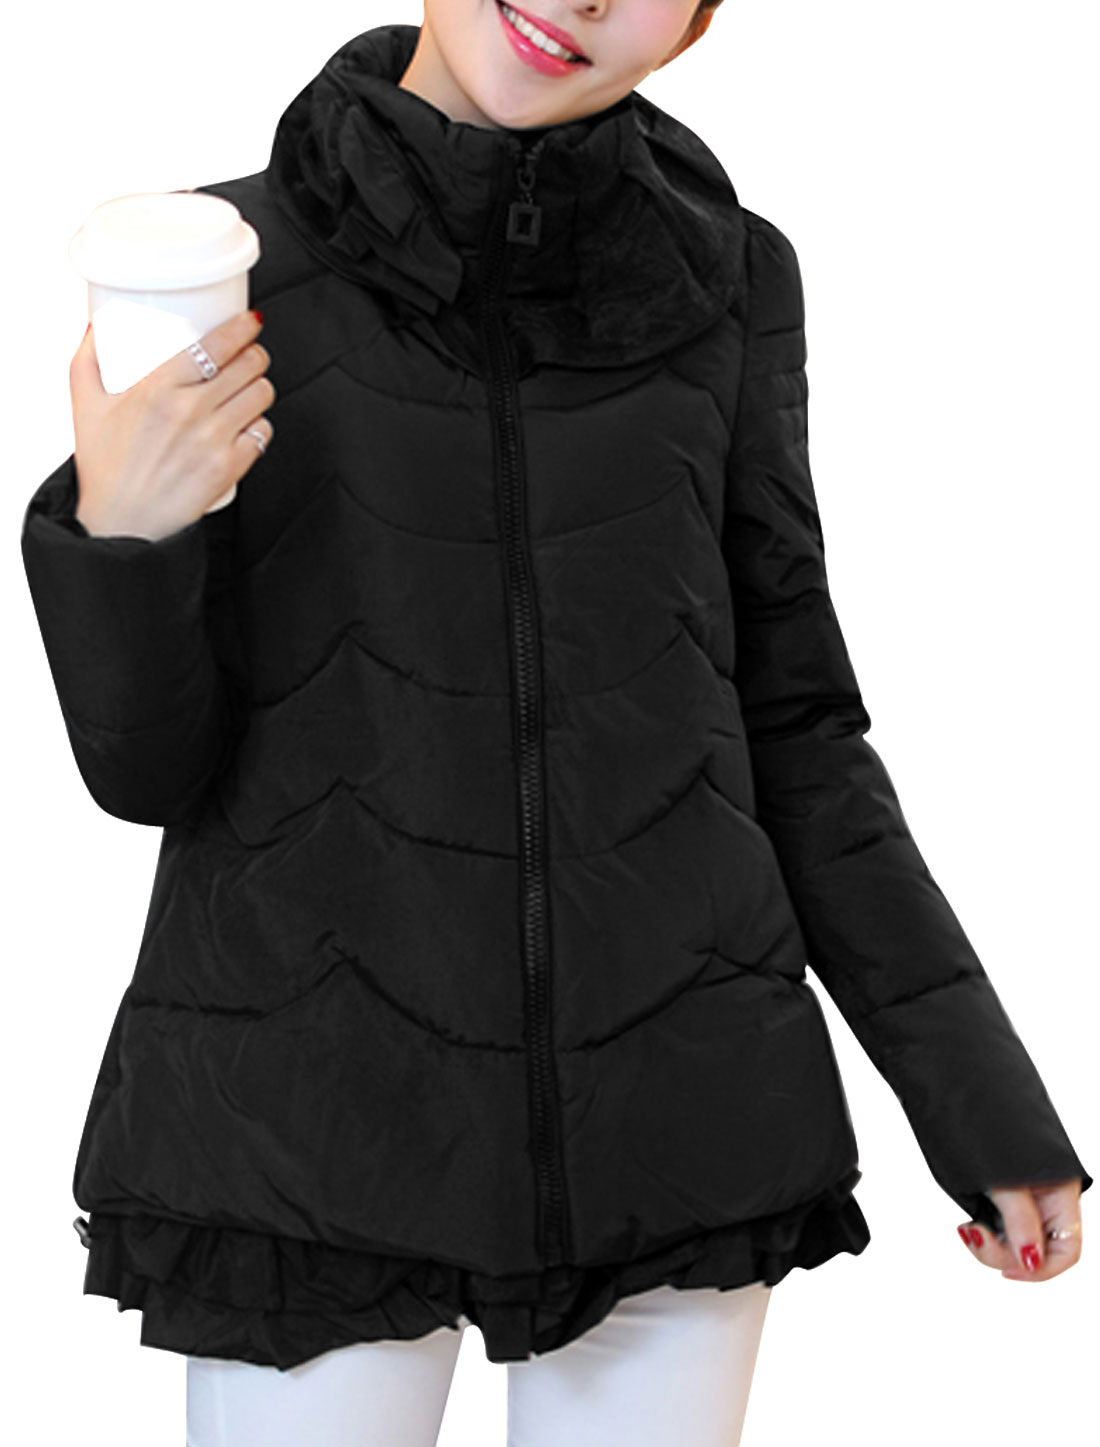 Lady Convertible Collar Zip Up Side Pockets Ruffles Hem Down Jacket Black M